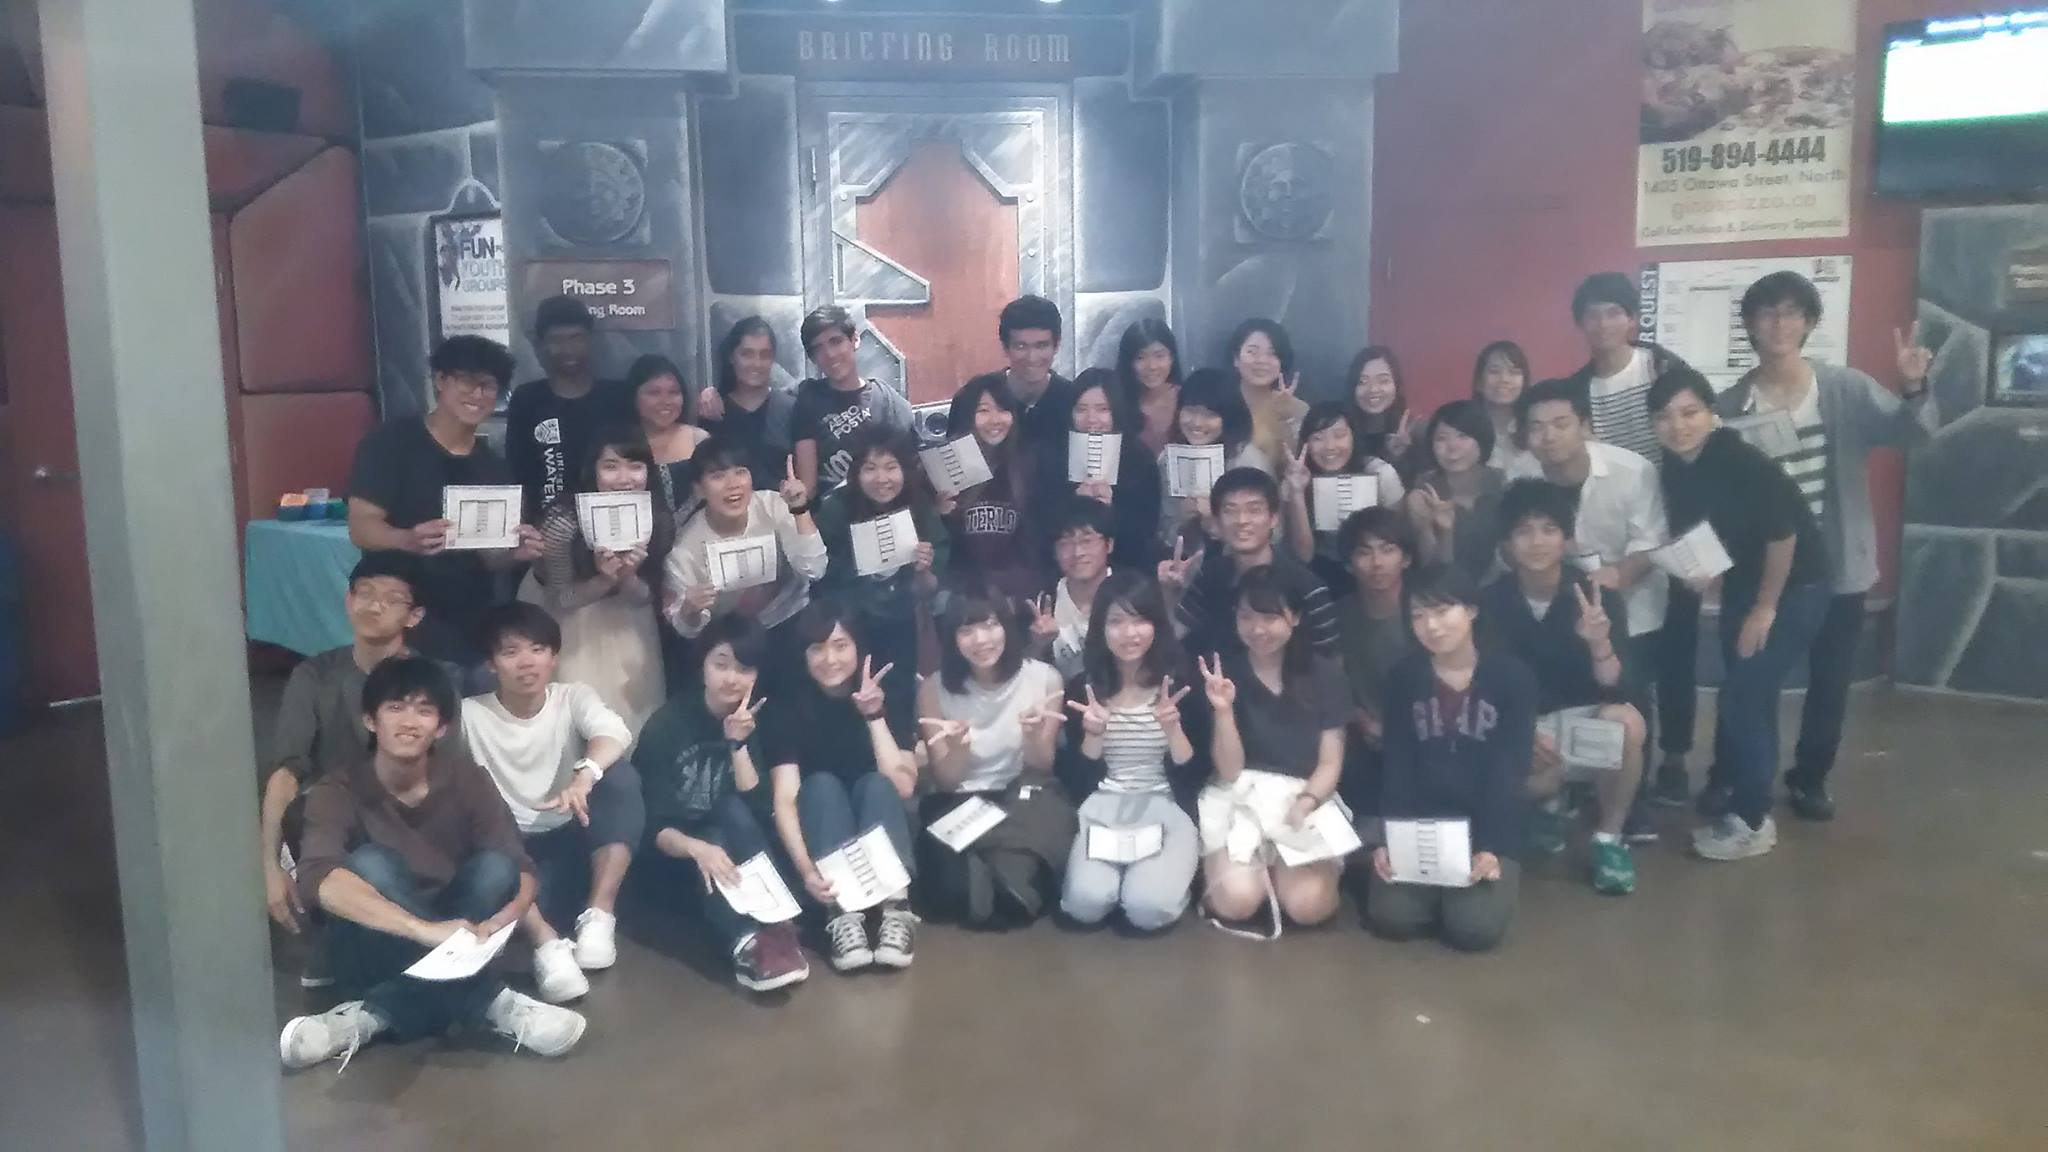 EFAS and GEAR students group photo at Laser Quest